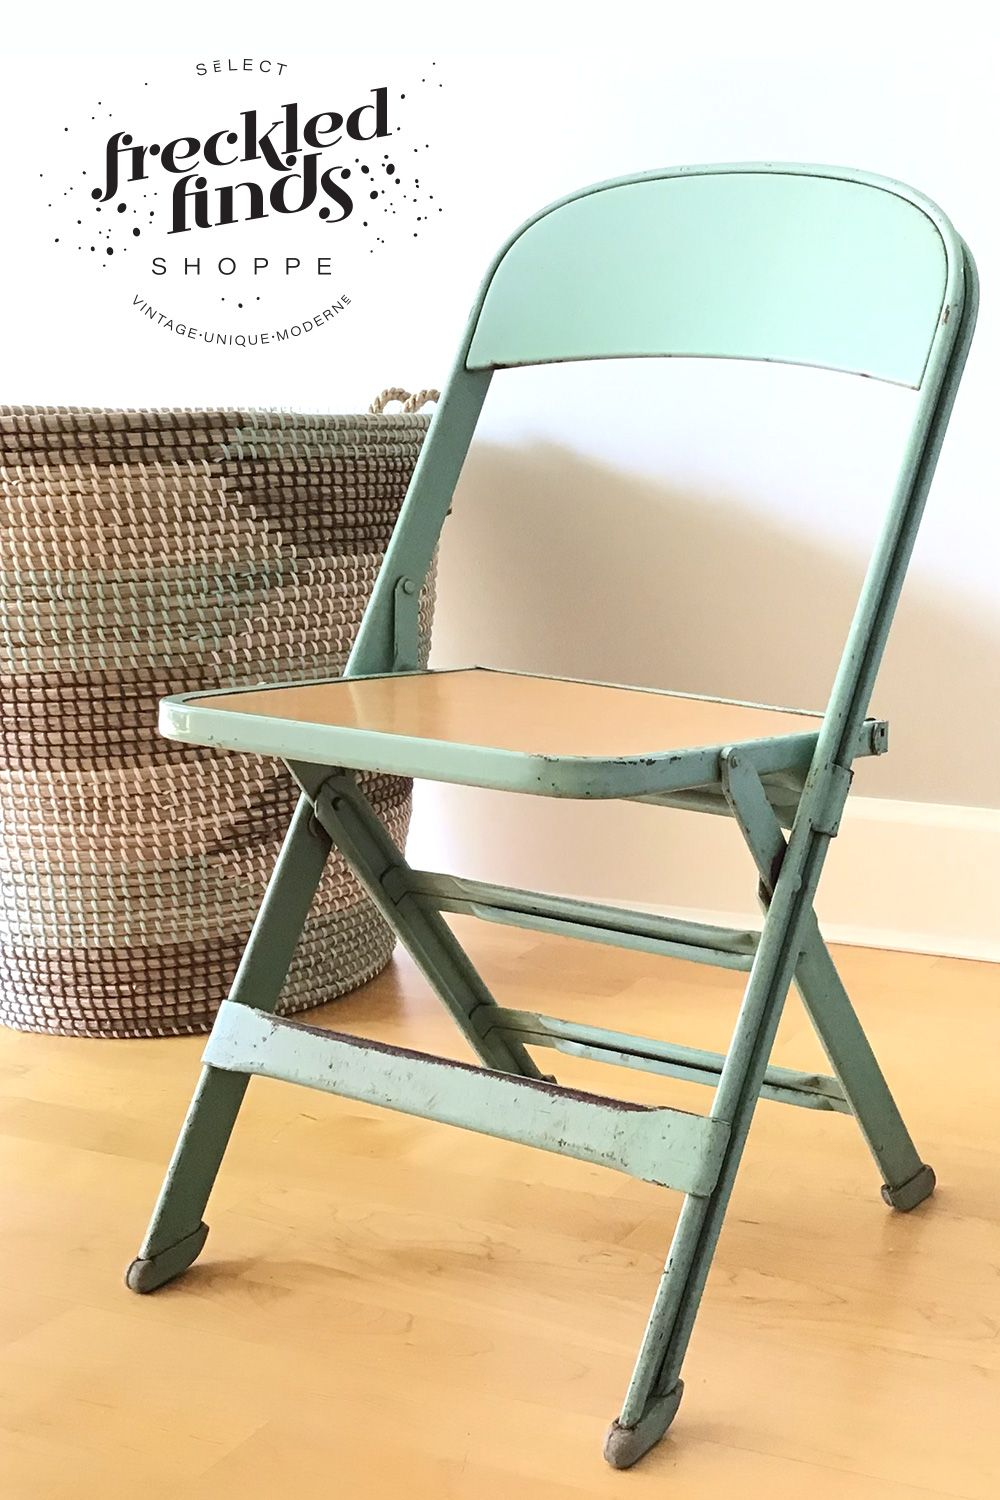 Awe Inspiring Vintage Kids Metal Folding Chairs Seafoam Green Pair Caraccident5 Cool Chair Designs And Ideas Caraccident5Info